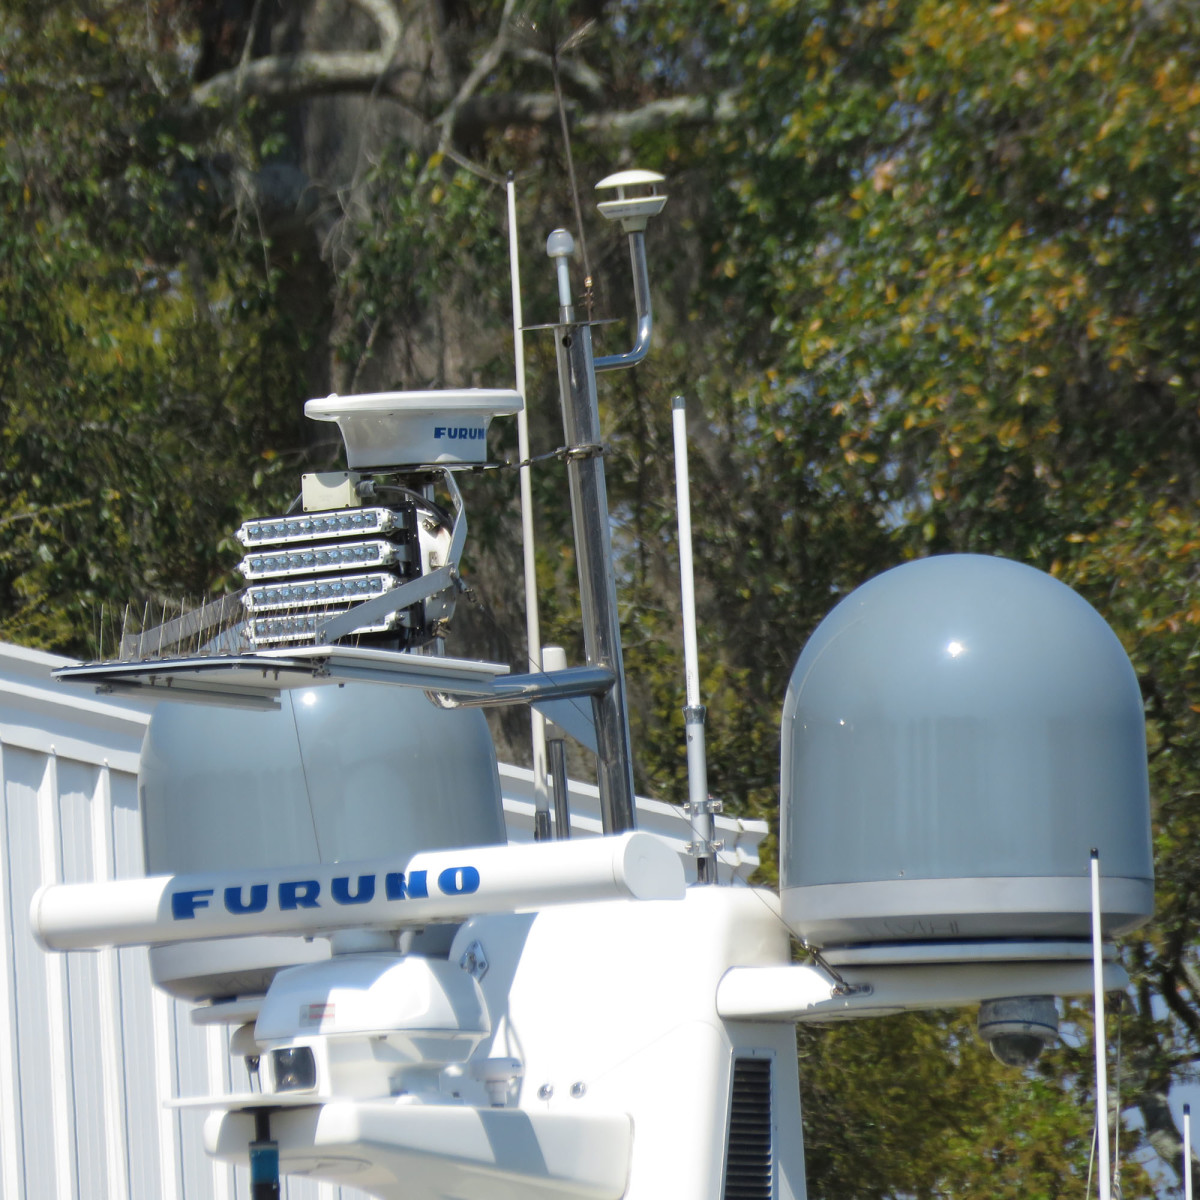 We mounted a floodlight high on the stack with a marine board shield under it, and another shield under our steaming light, to ensure no light shines on deck and impacts our night vision.